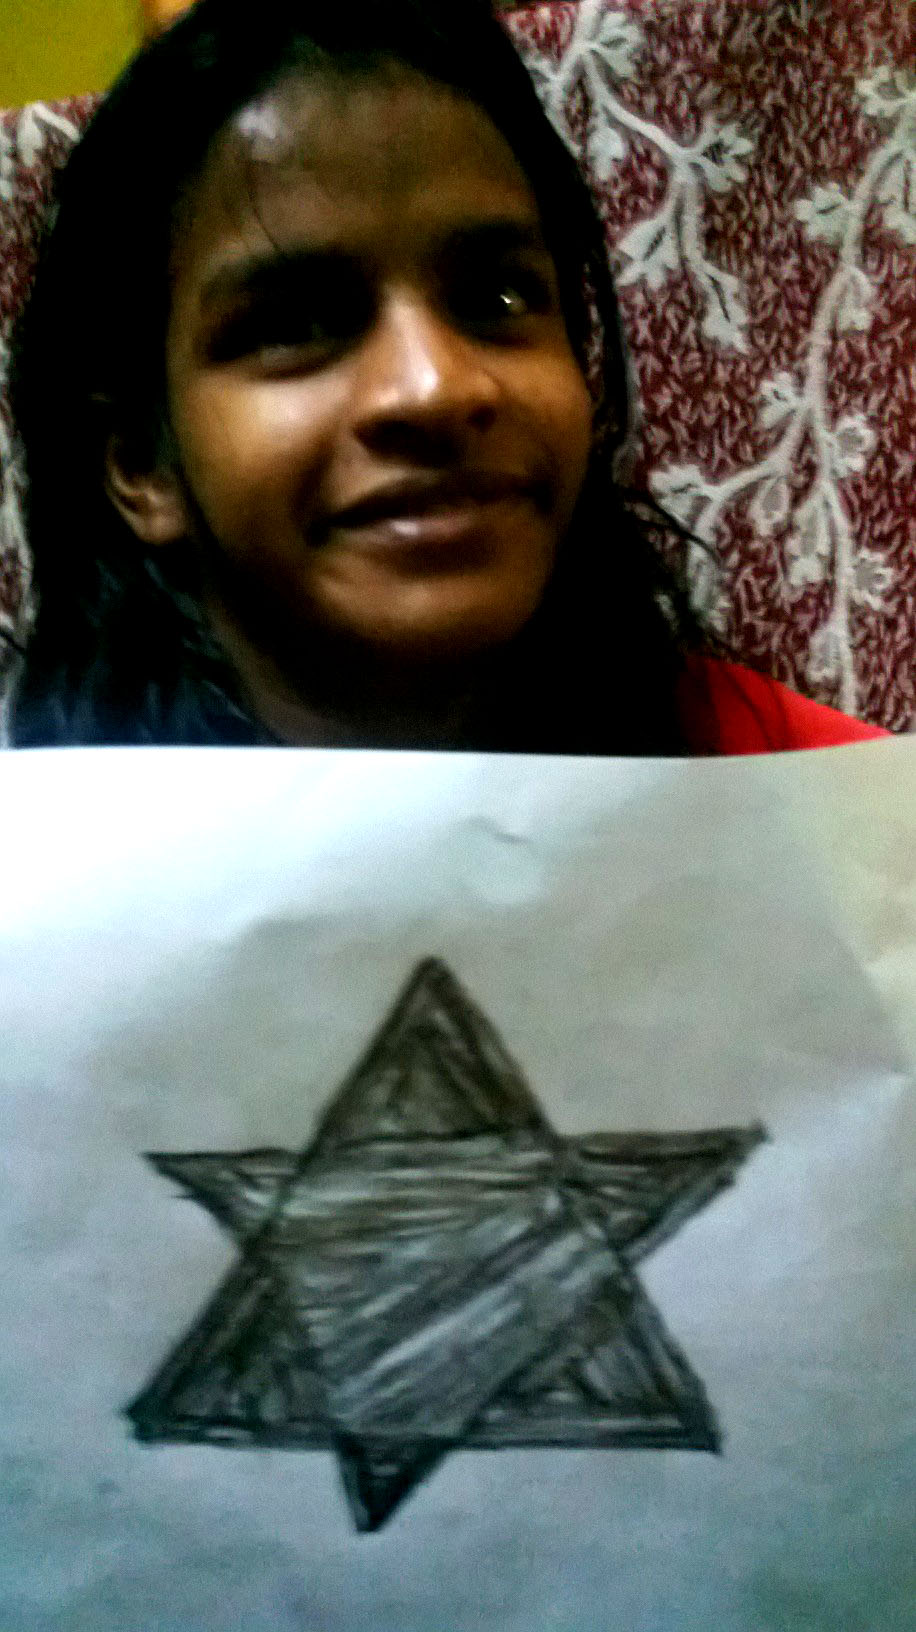 shuktara - Lali Blackstar art project